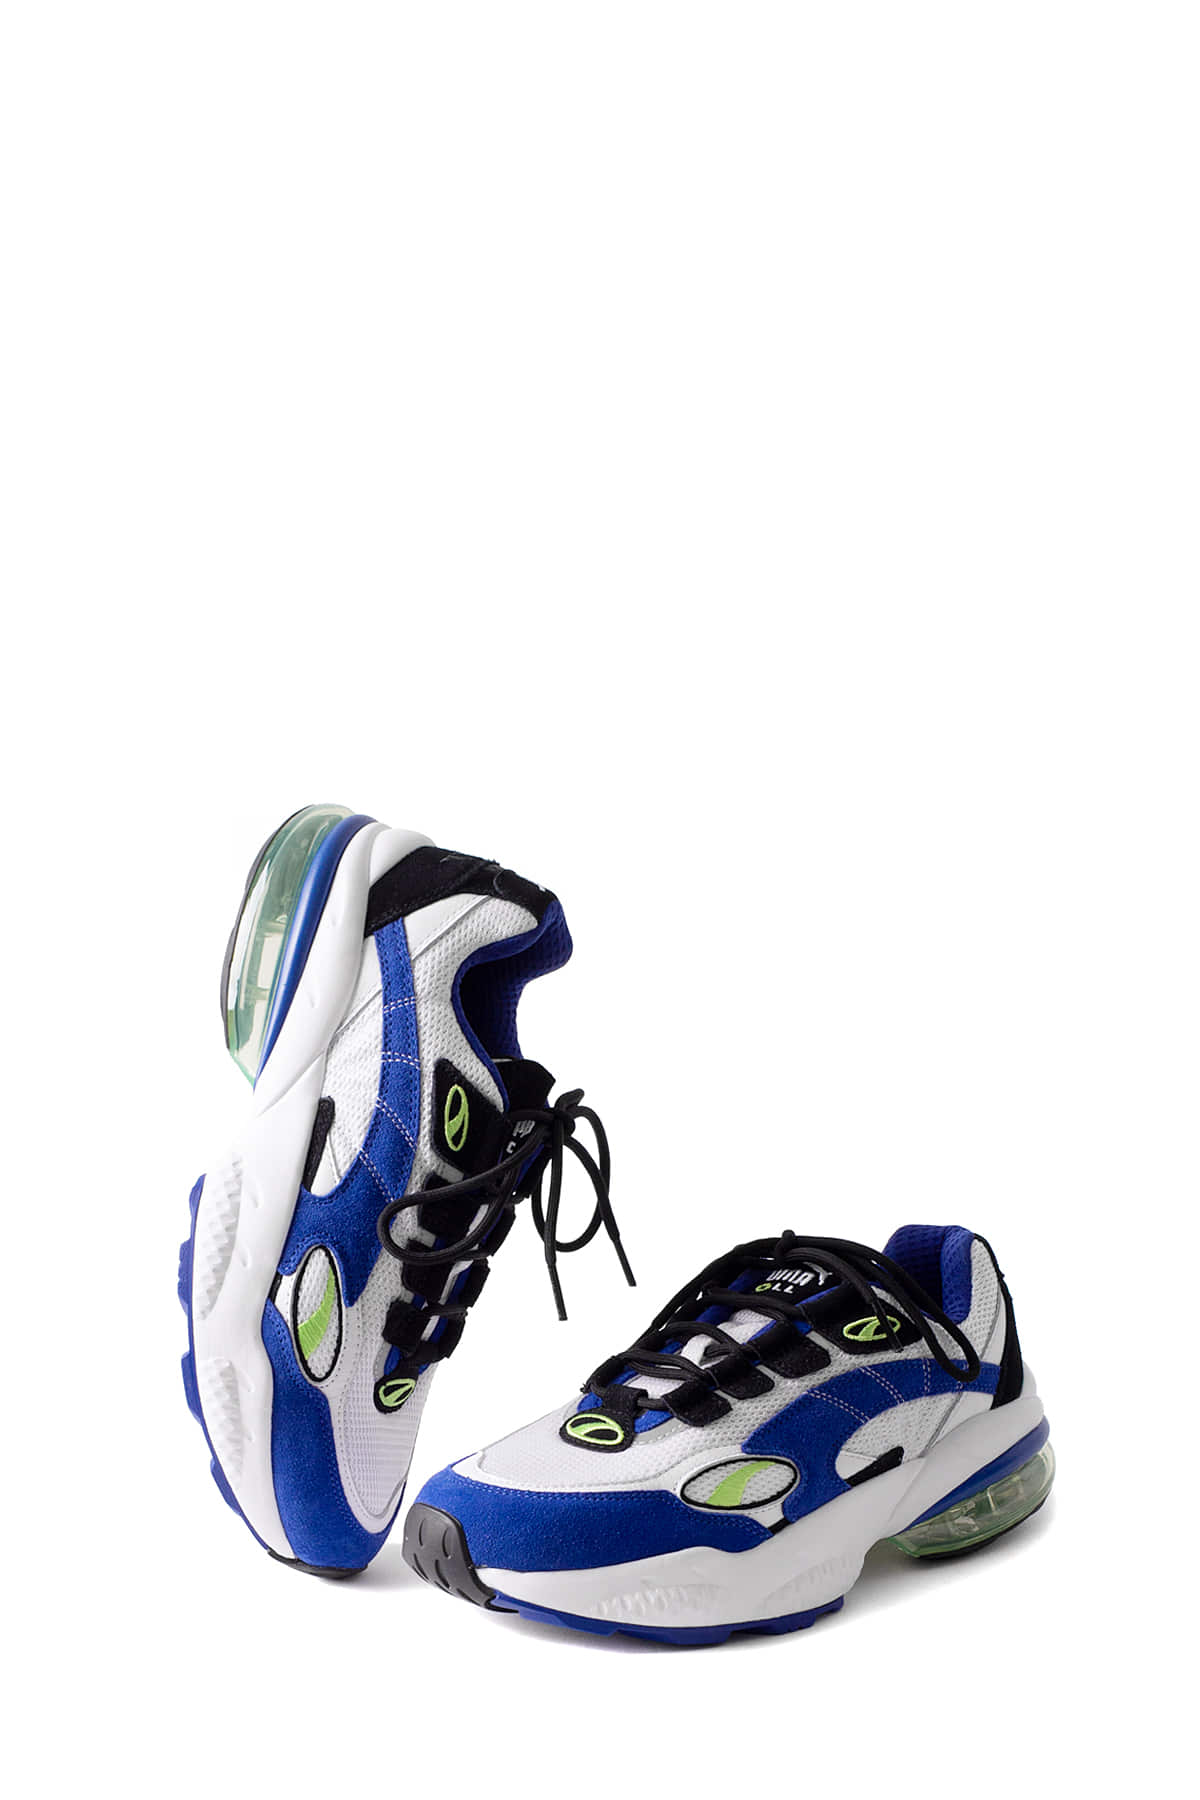 PUMA : Cell Venom (White)